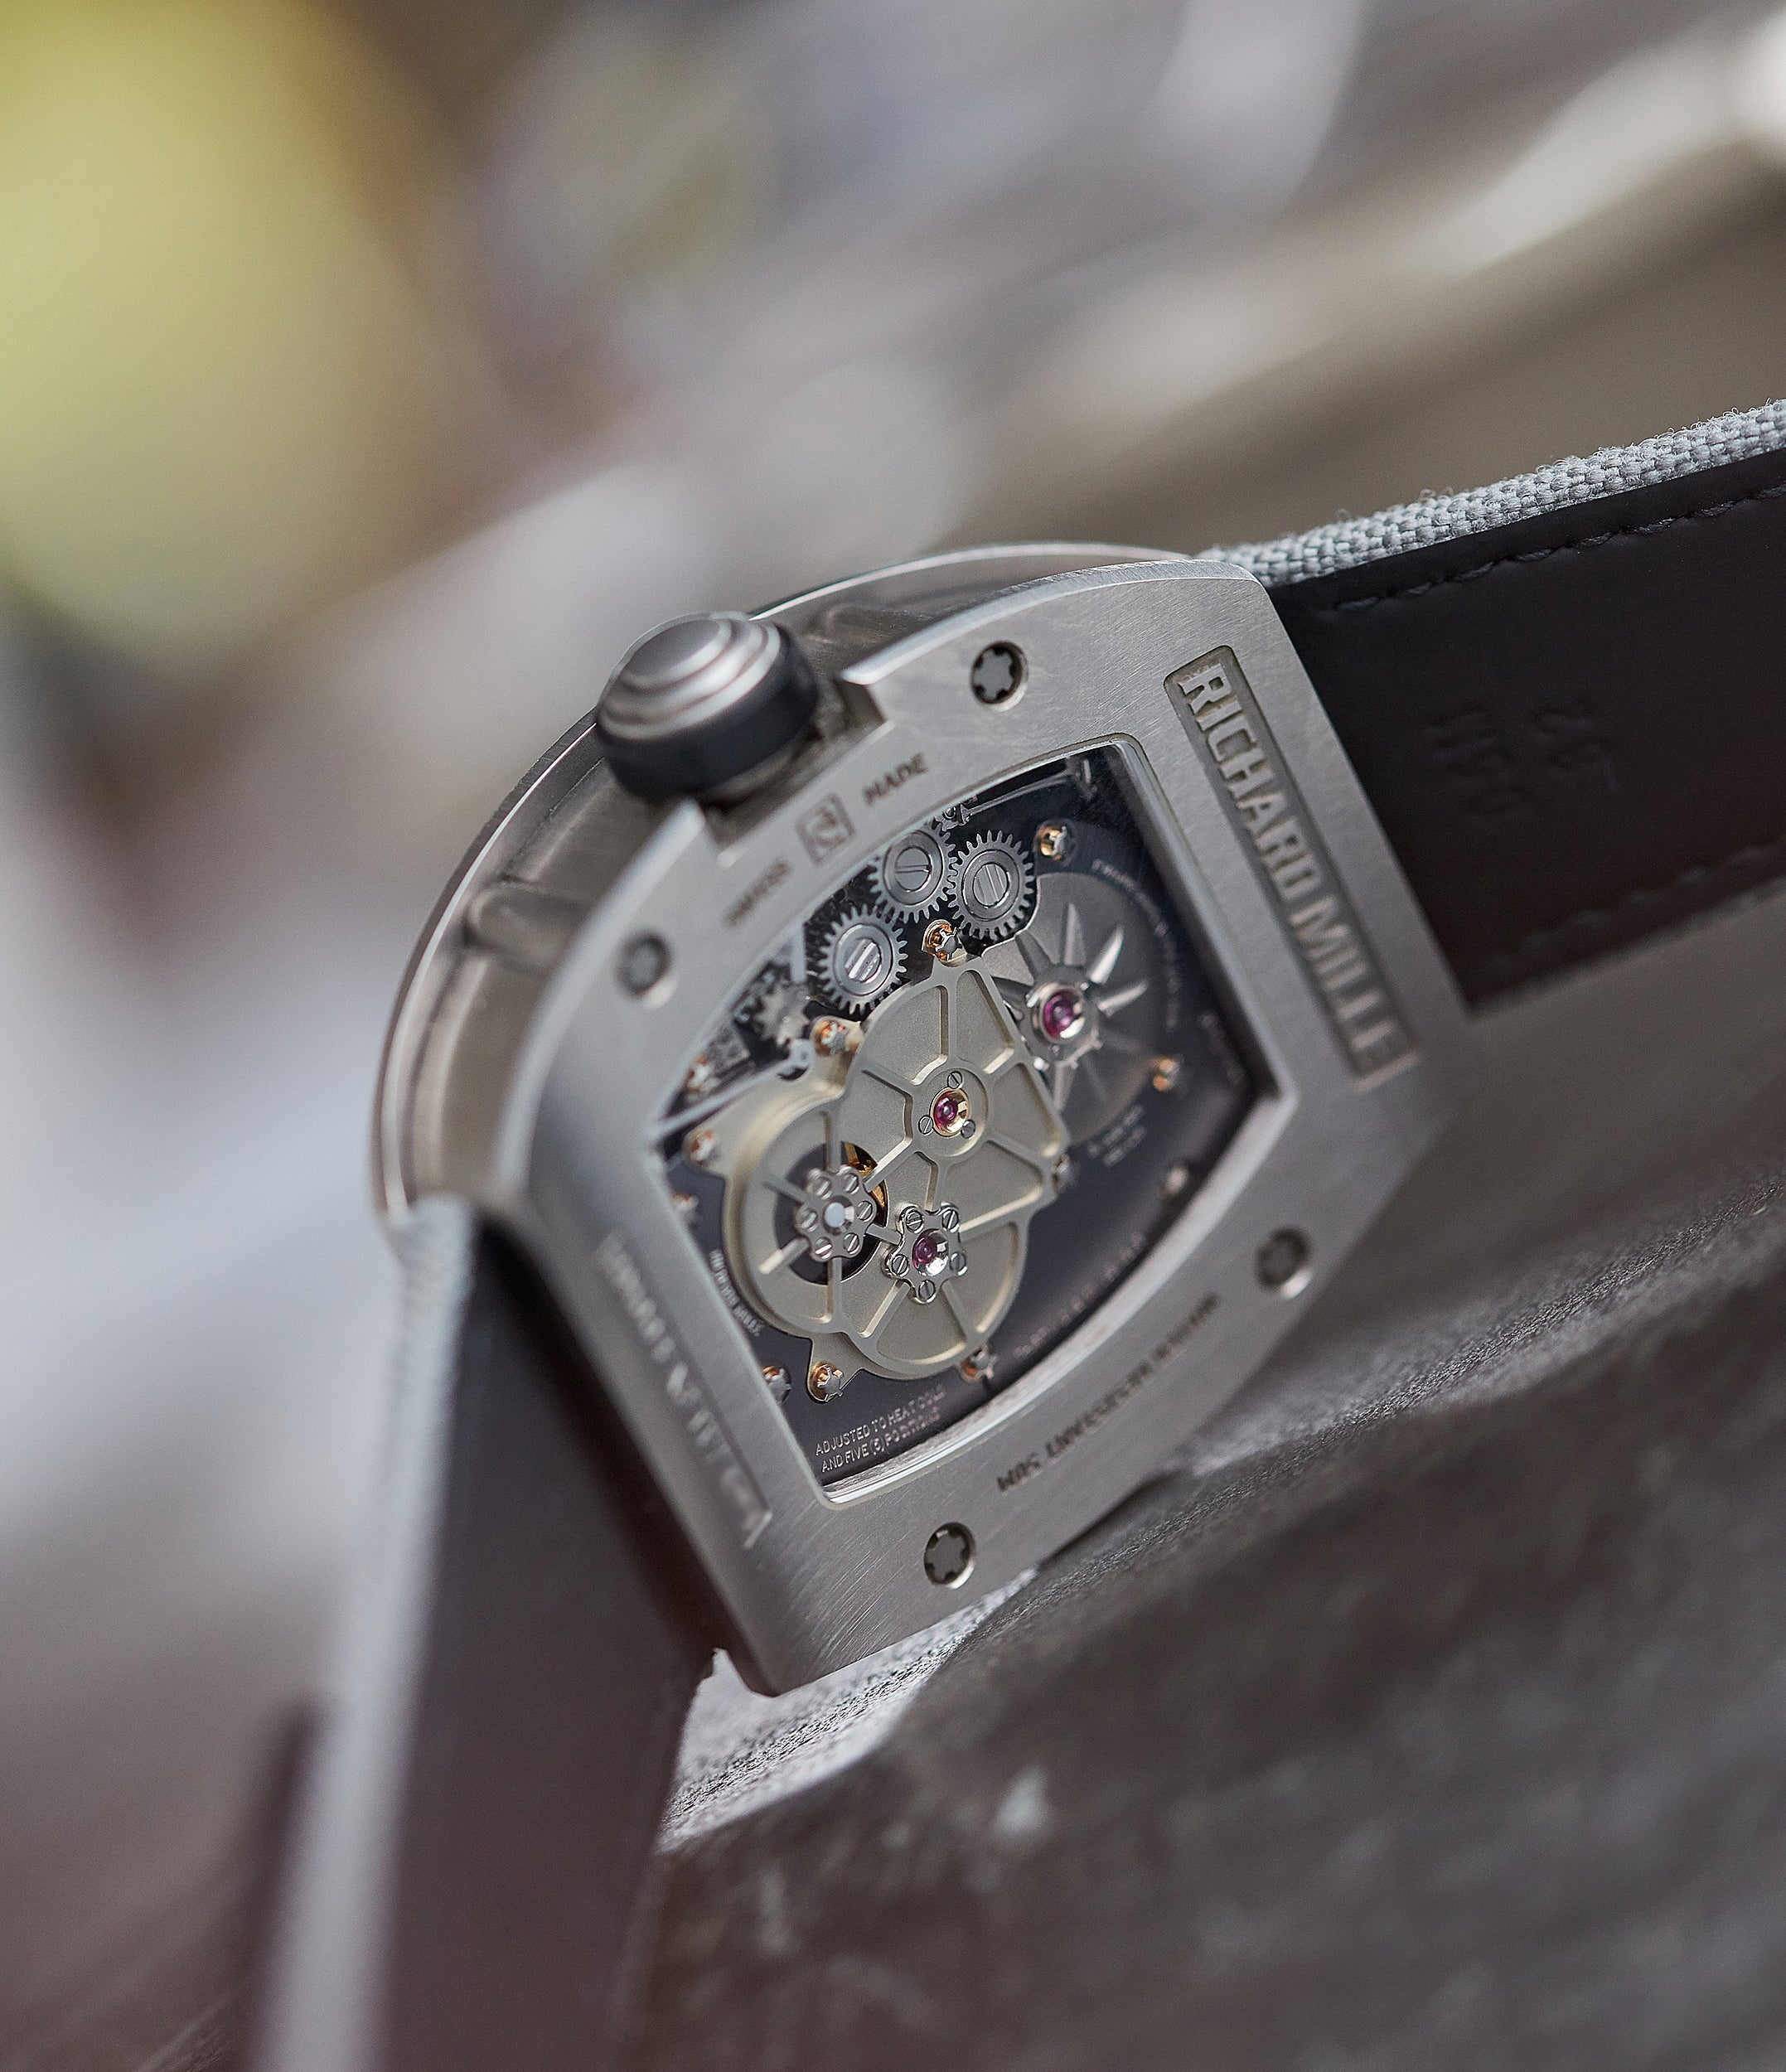 find rare RM003-V2 movement Richard Mille titanium tourbillon dual-time pre-owned rare independent watchmaker sports traveller watch for sale online at A Collected Man London UK specialist of rare watches